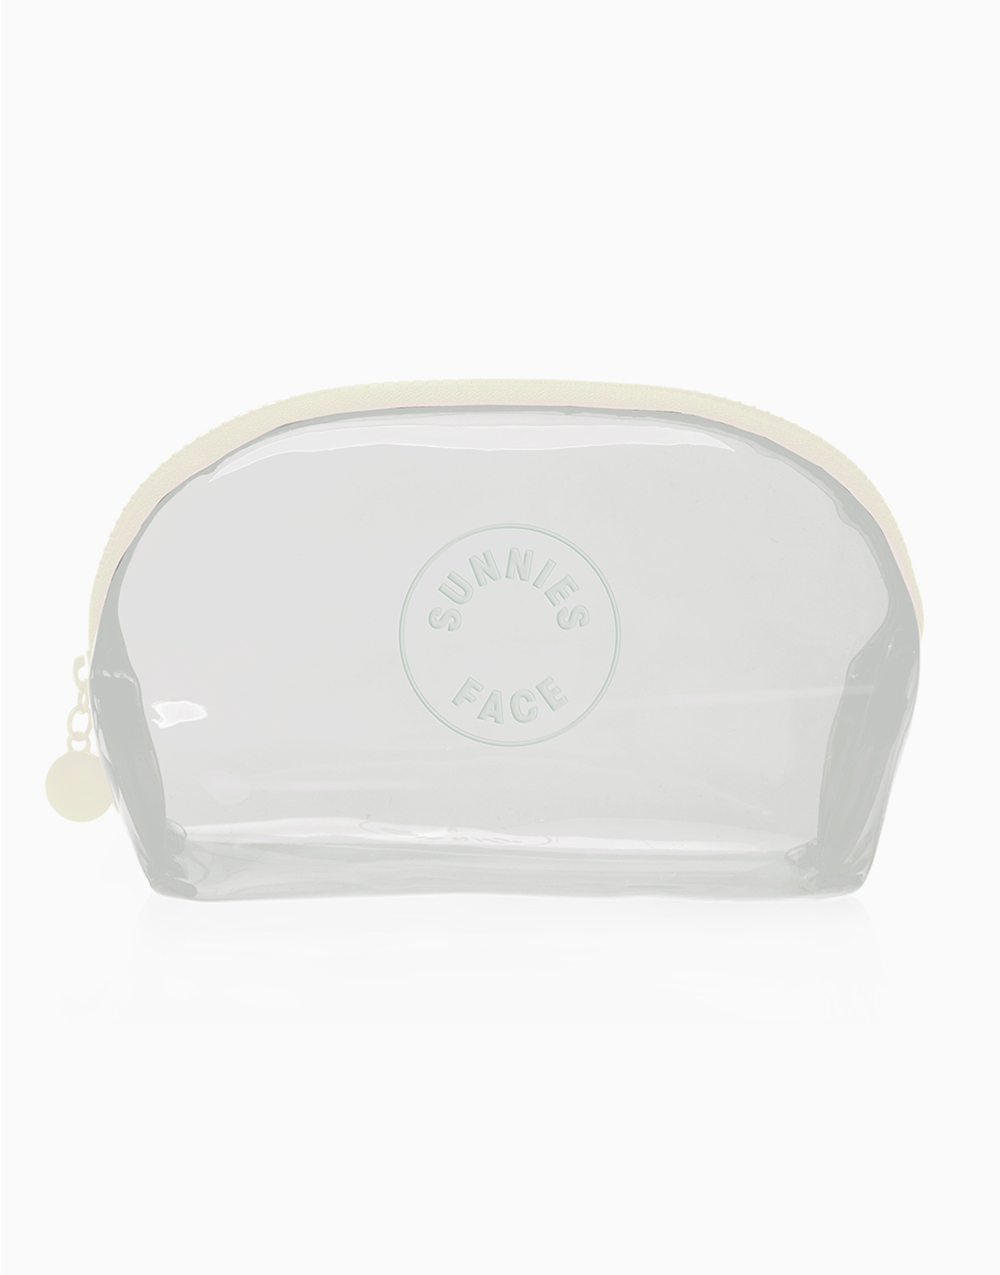 Sunnies Face Jelly Pouch [Makeup Pouch] (Coconut) by Sunnies Face